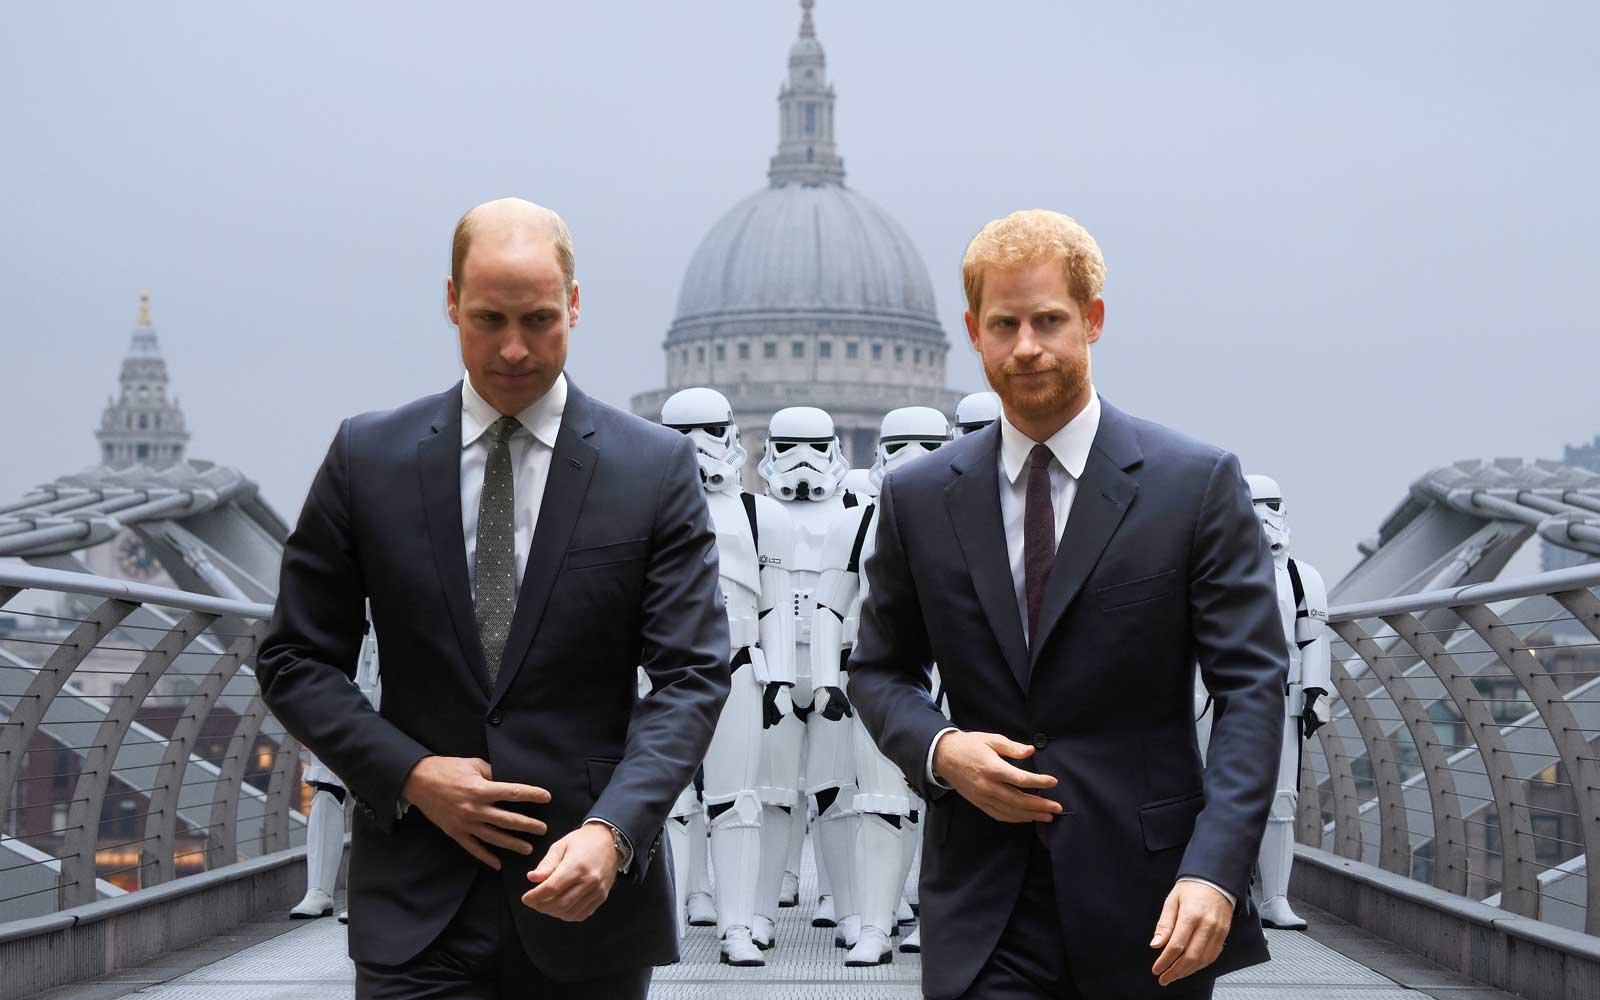 Prince William and Harry superimposed on Stormtroopers